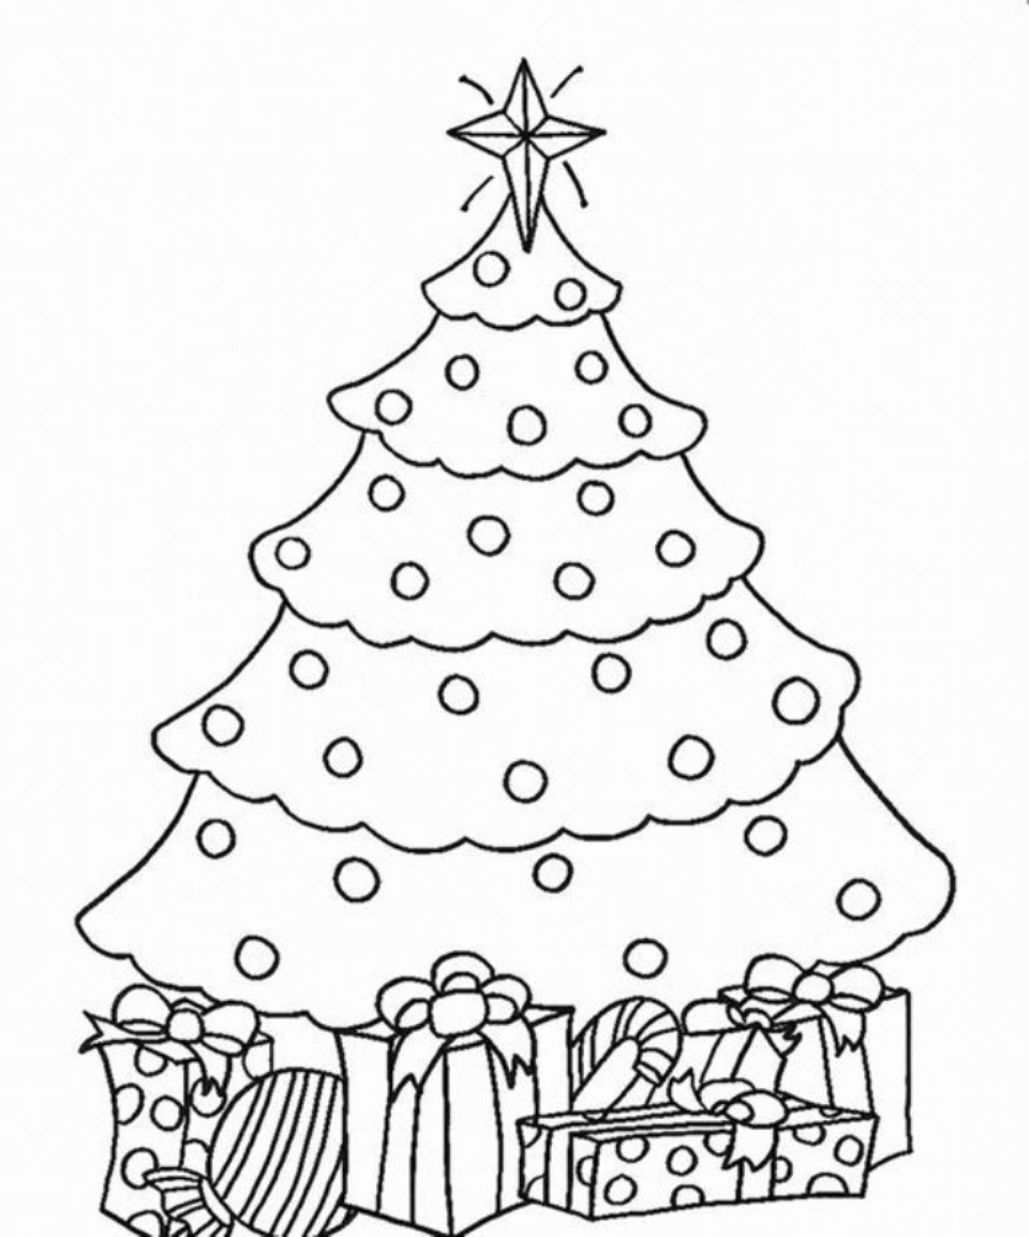 Coloring Pages Christmas Tree And Present Jpg 1029 1237 Christmas Tree Coloring Page Tree Coloring Page Christmas Coloring Pages